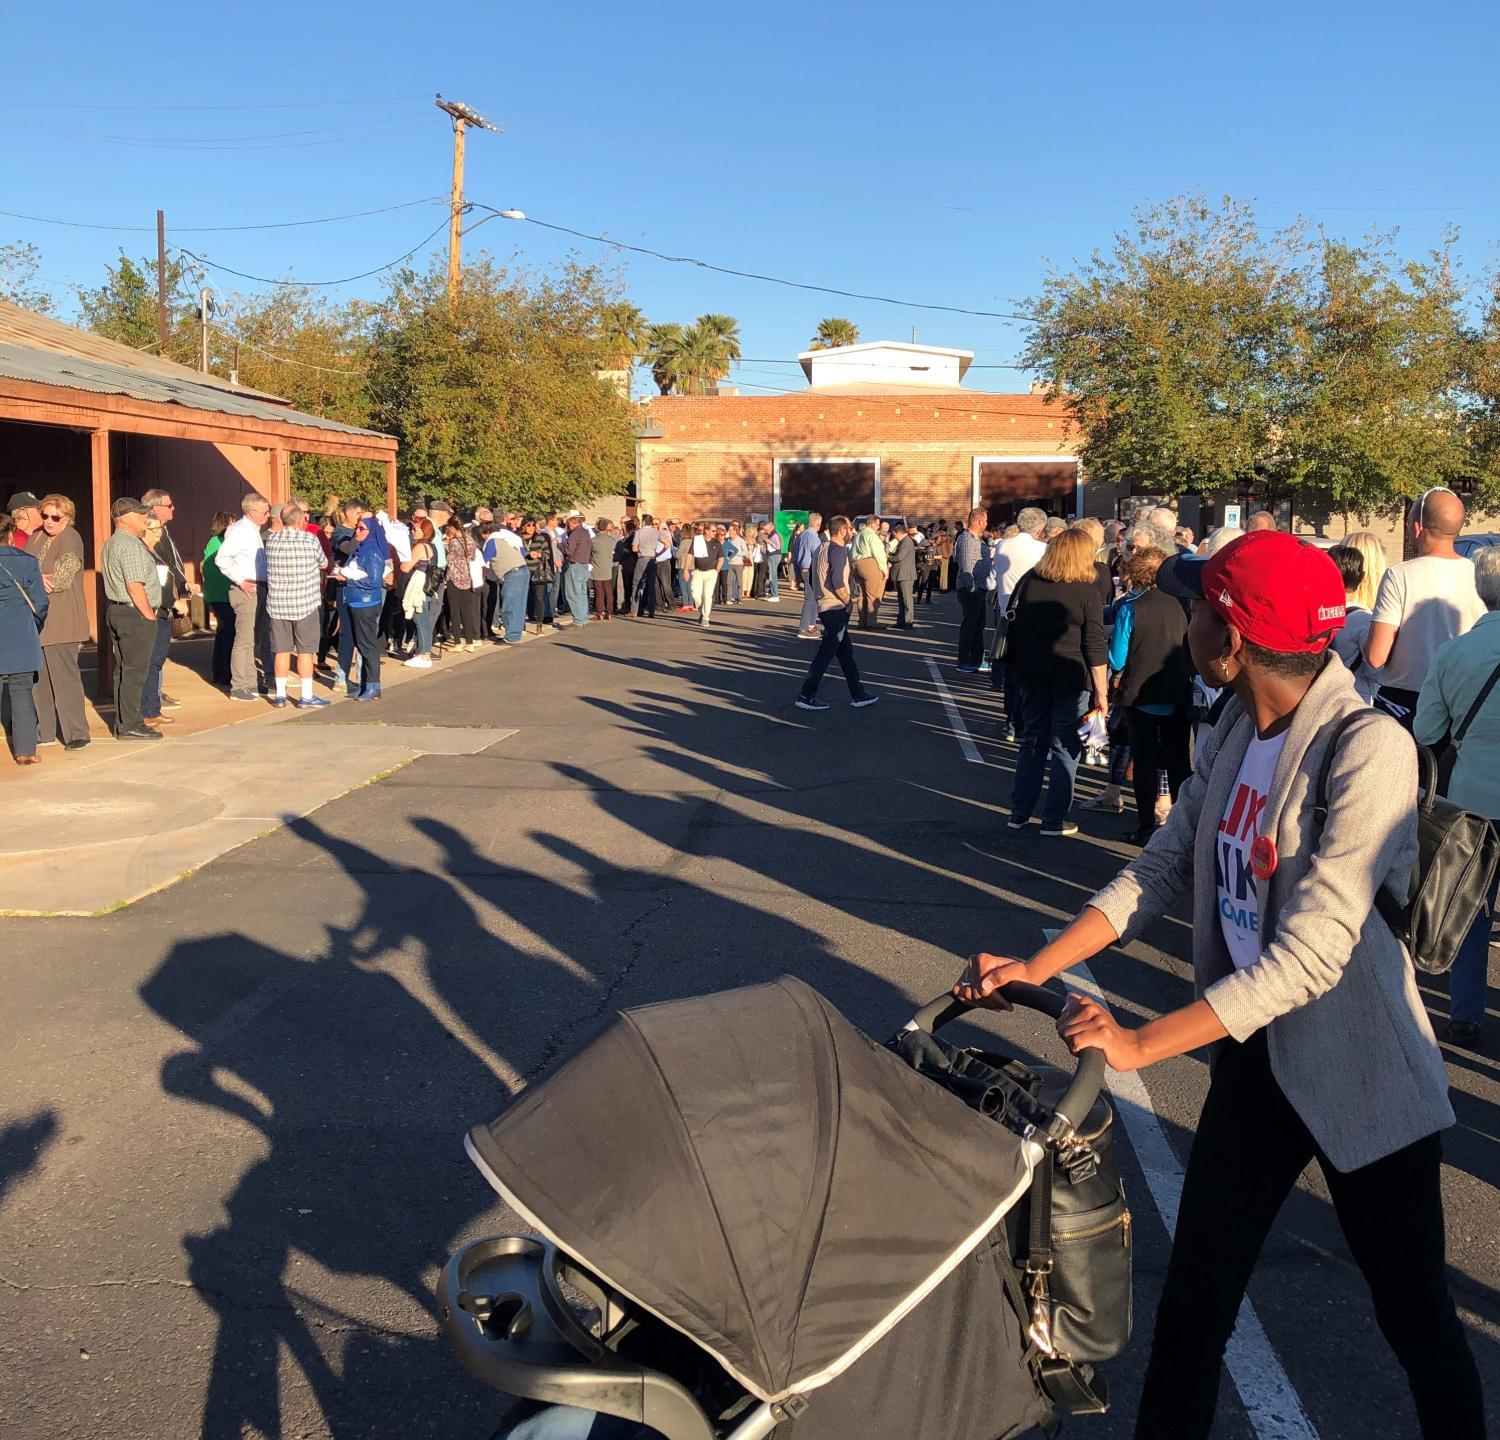 People line up outside a downtown Phoenix warehouse to hear Democratic presidential candidate Michael Bloomberg speak, Feb. 1, 2020.